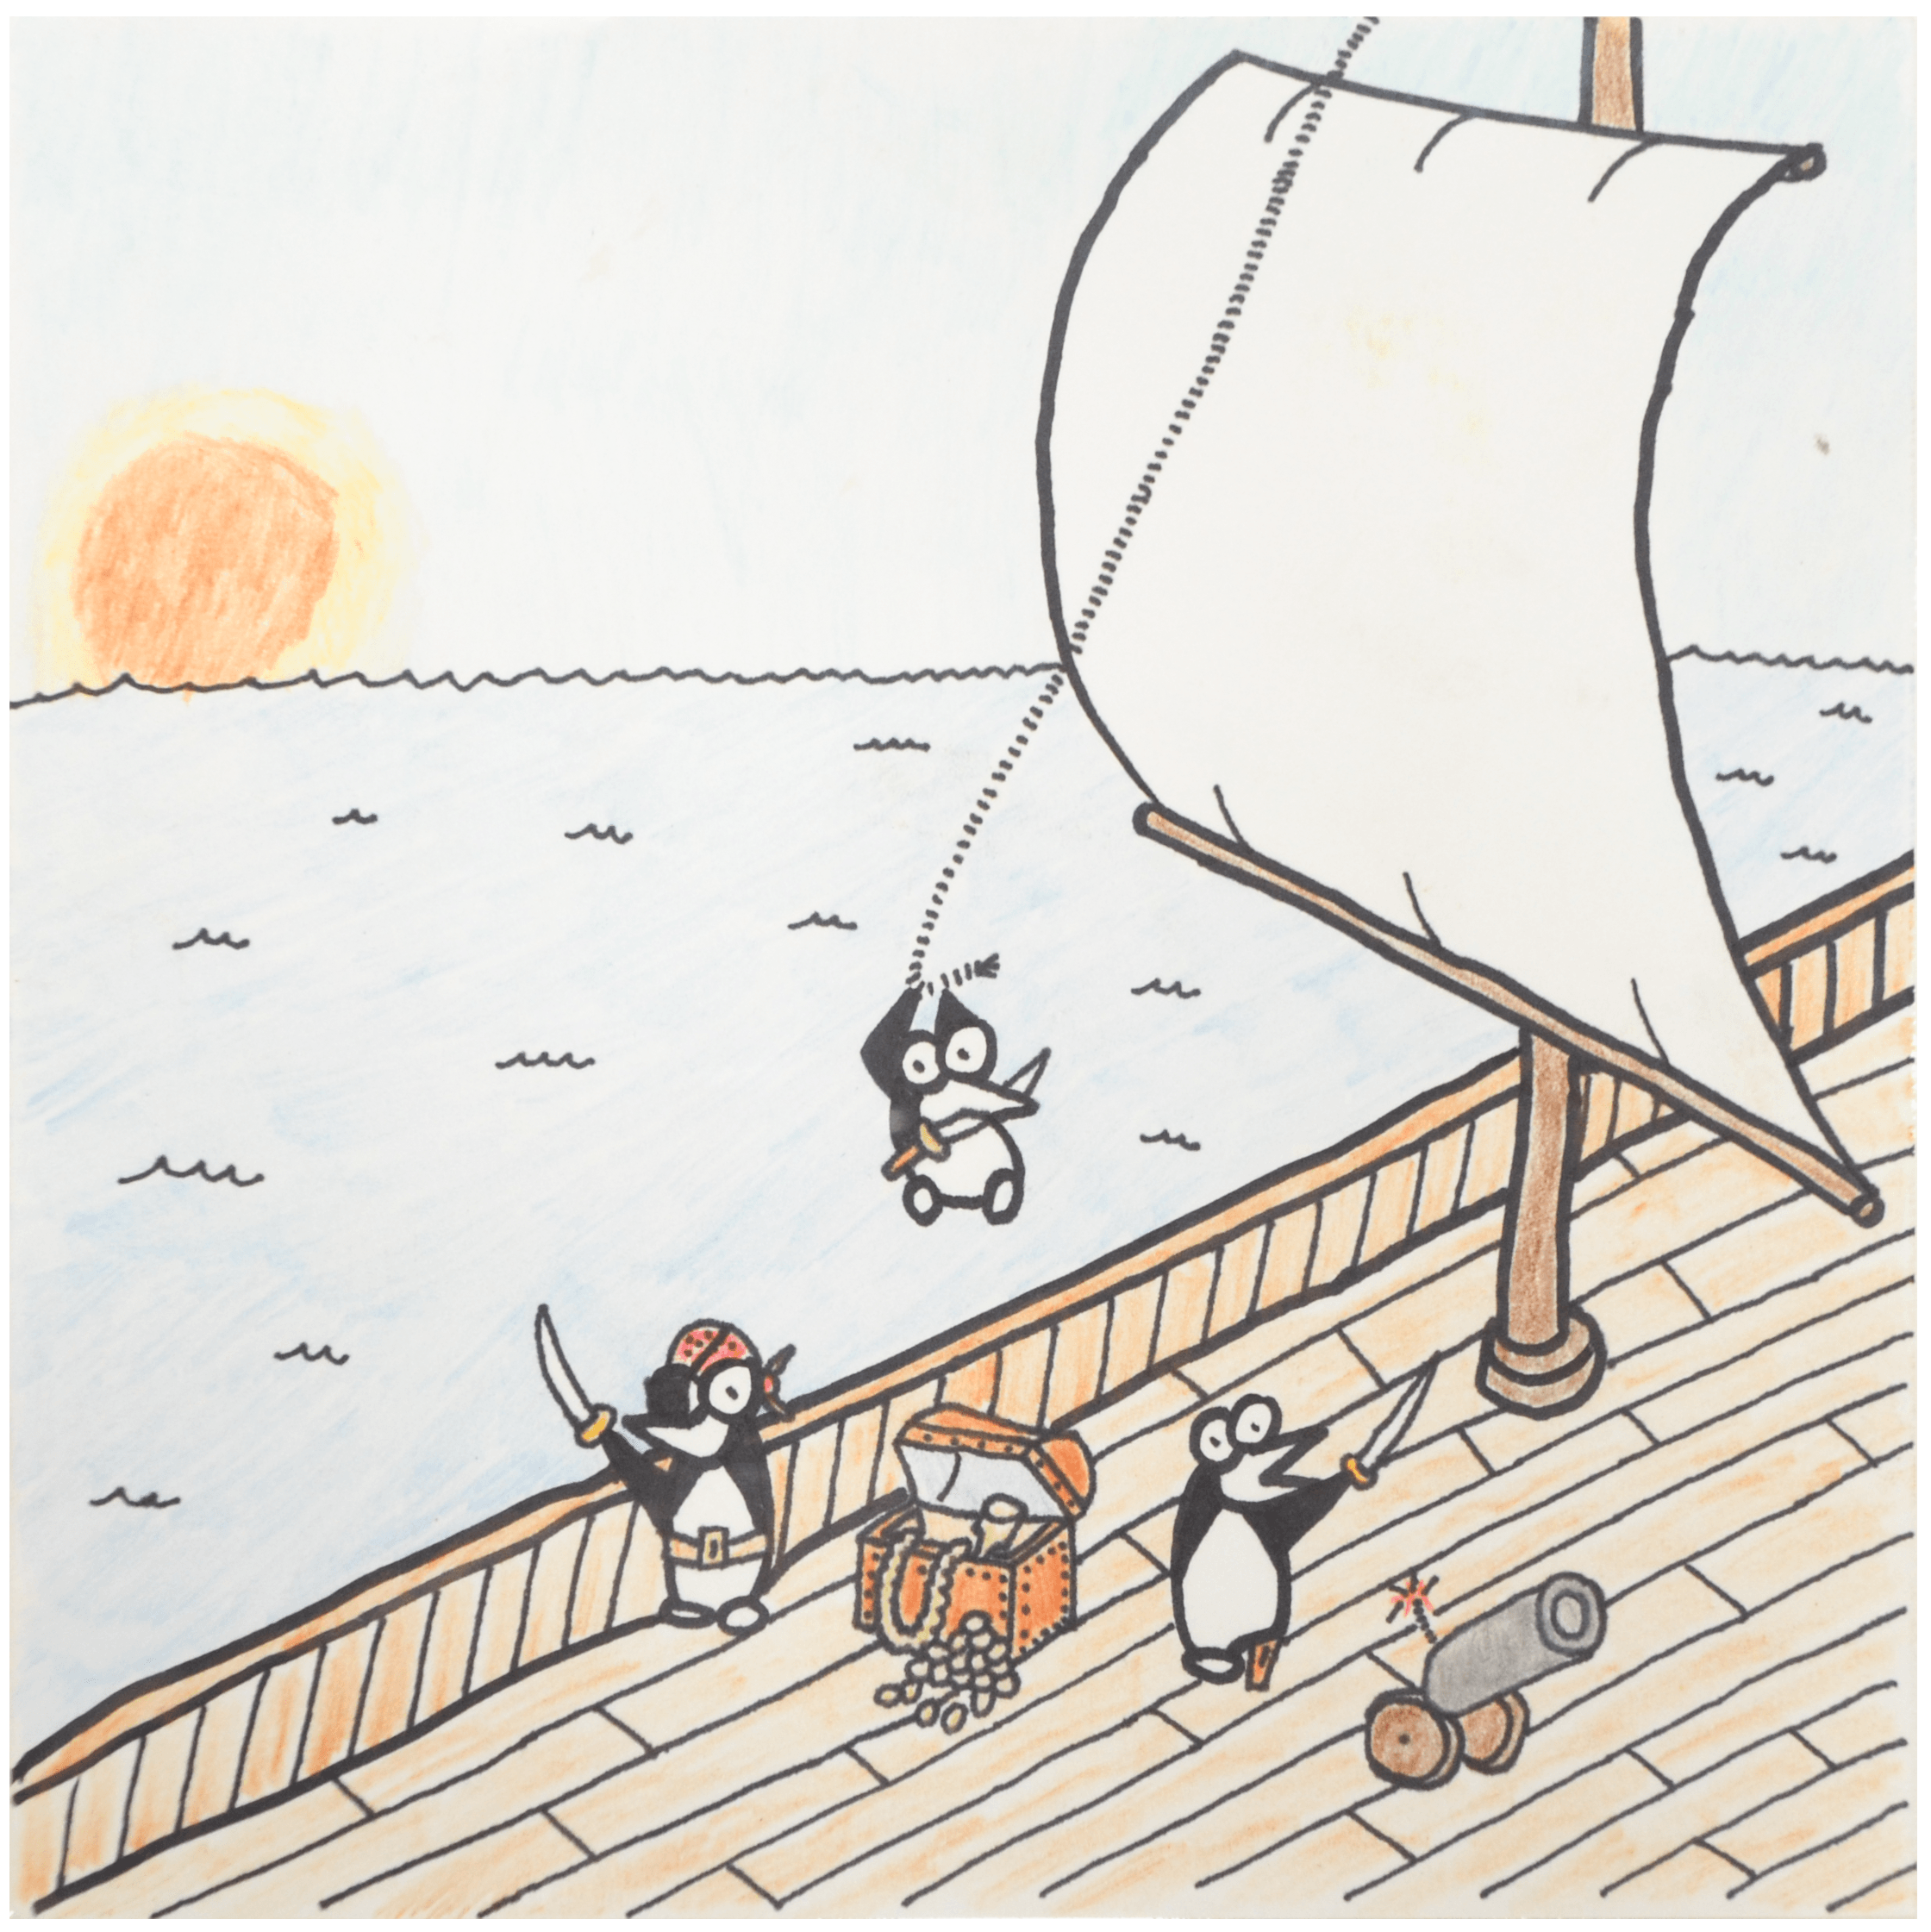 The Guins pirate drawing by S.C. Maher